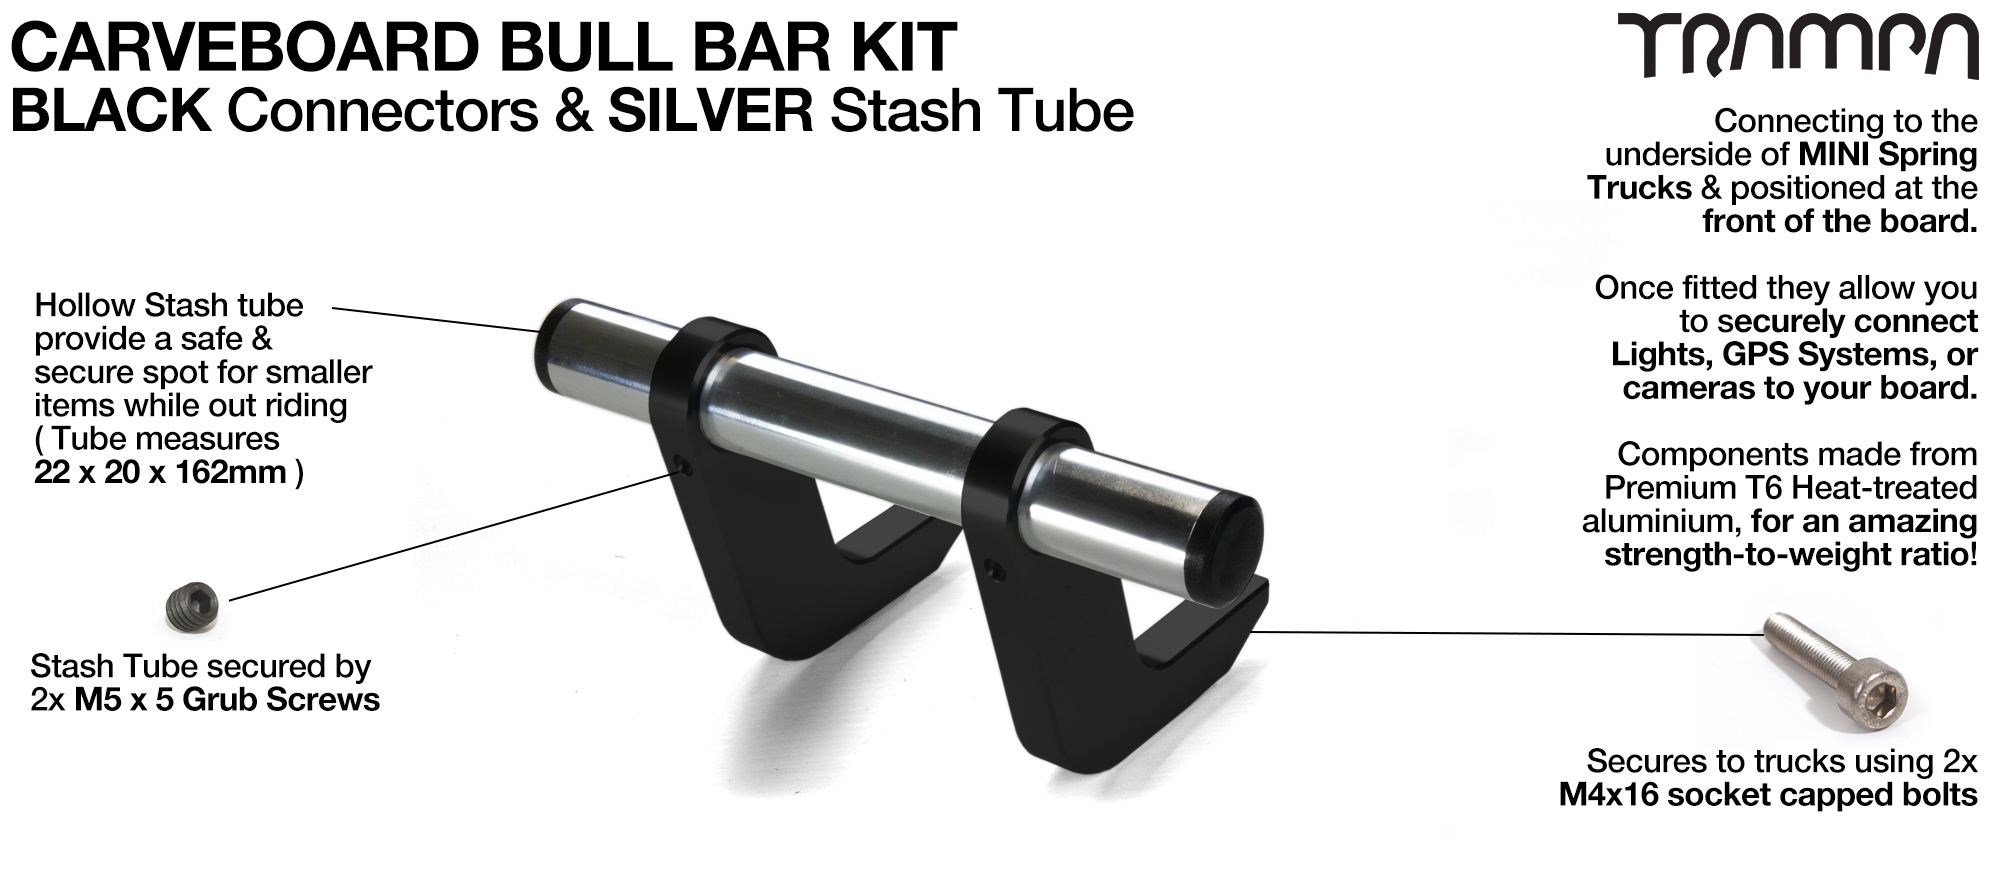 BLACK Uprights & SILVER Crossbar BULL BARS for CARVE BOARDS using T6 Heat Treated CNC'd Aluminum Clamps, Hollow Aluminium Stash Tubes with Rubber end bungs